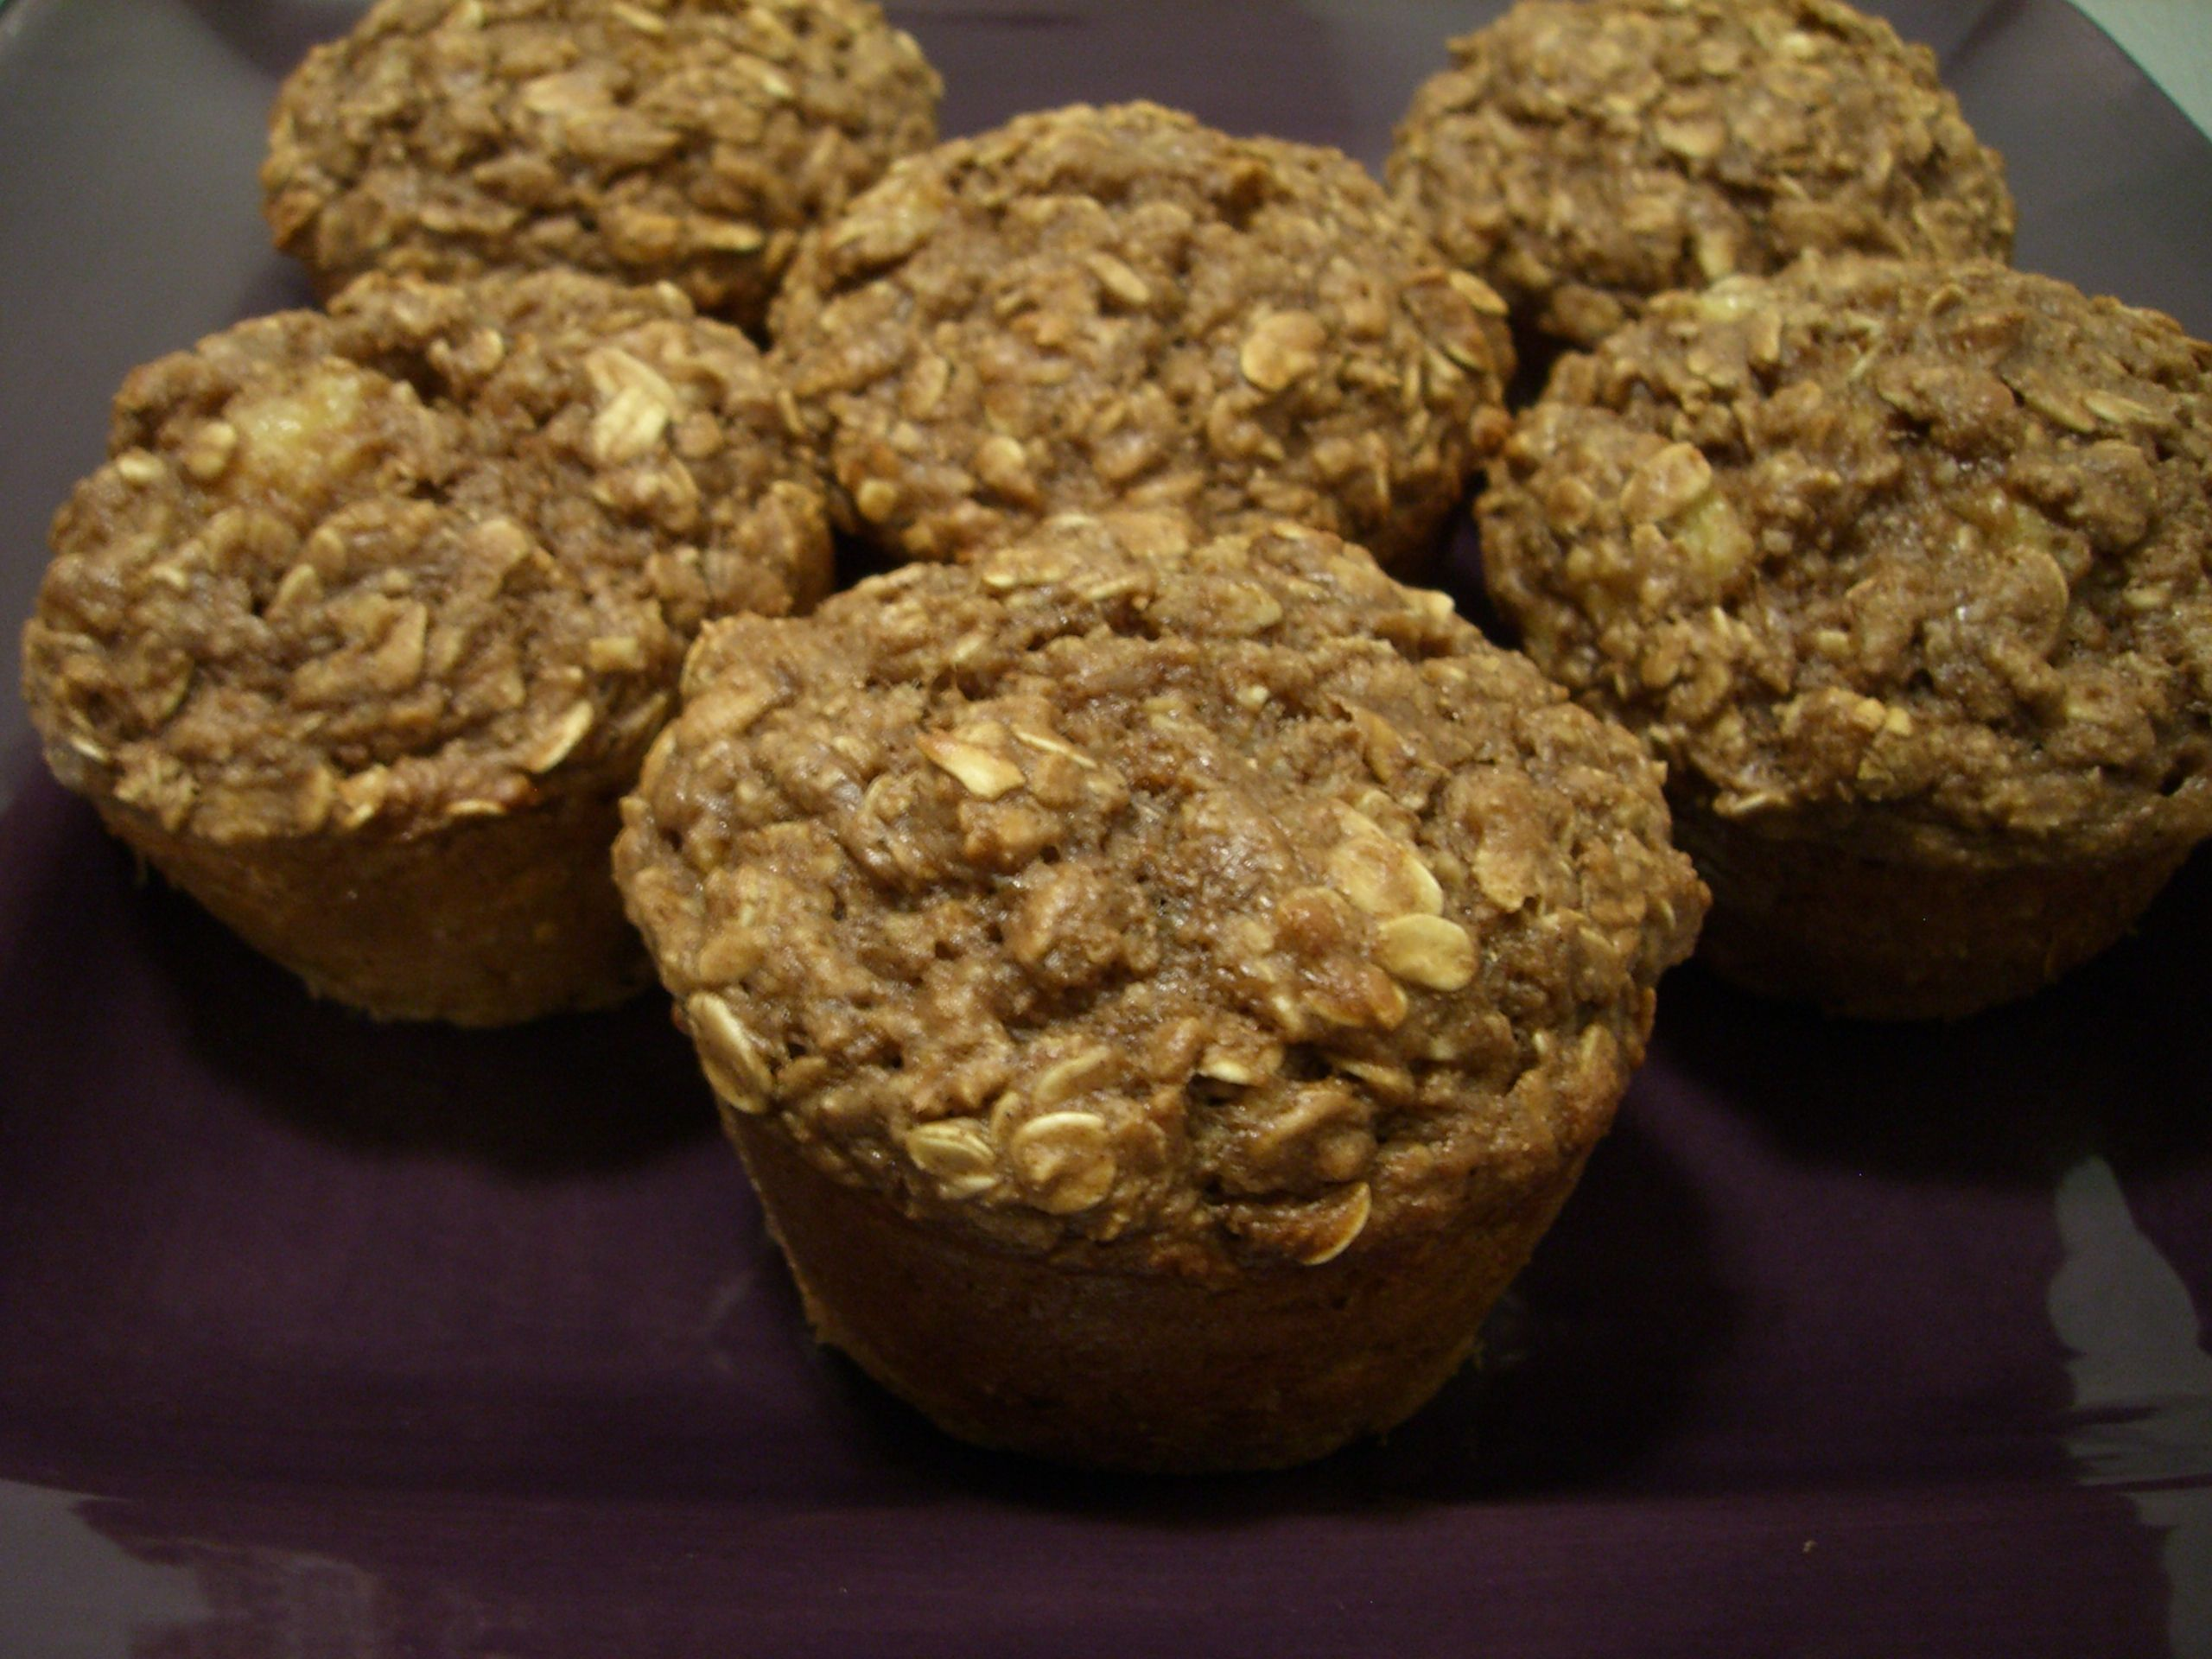 Choconana pudding muffinssubstitute the butter for